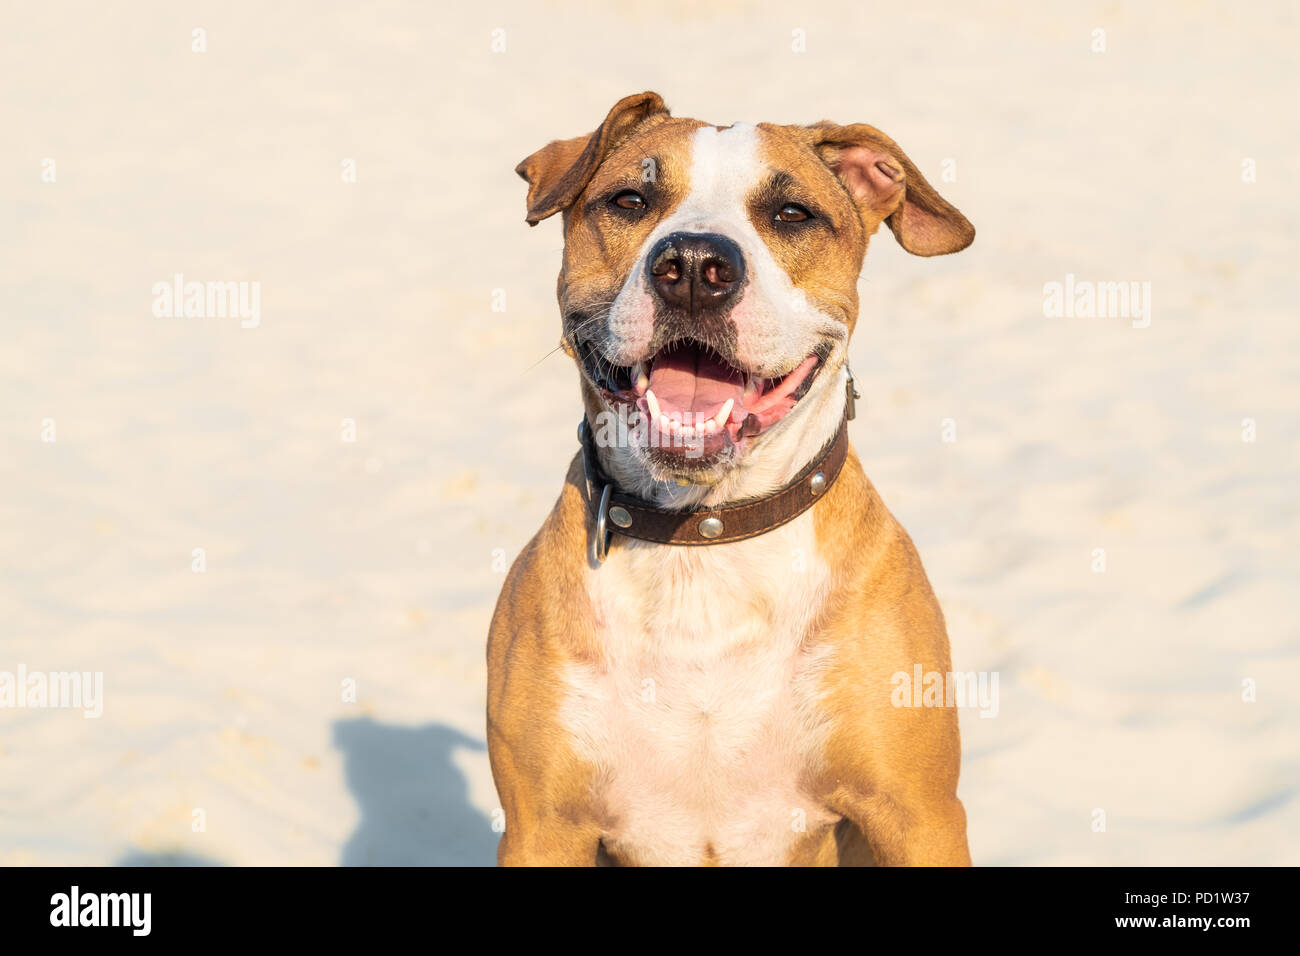 Cheerful kind dog sits in sand outdoors. Cute staffordshire terrier puppy in sandy beach or desert on hot summer day - Stock Image